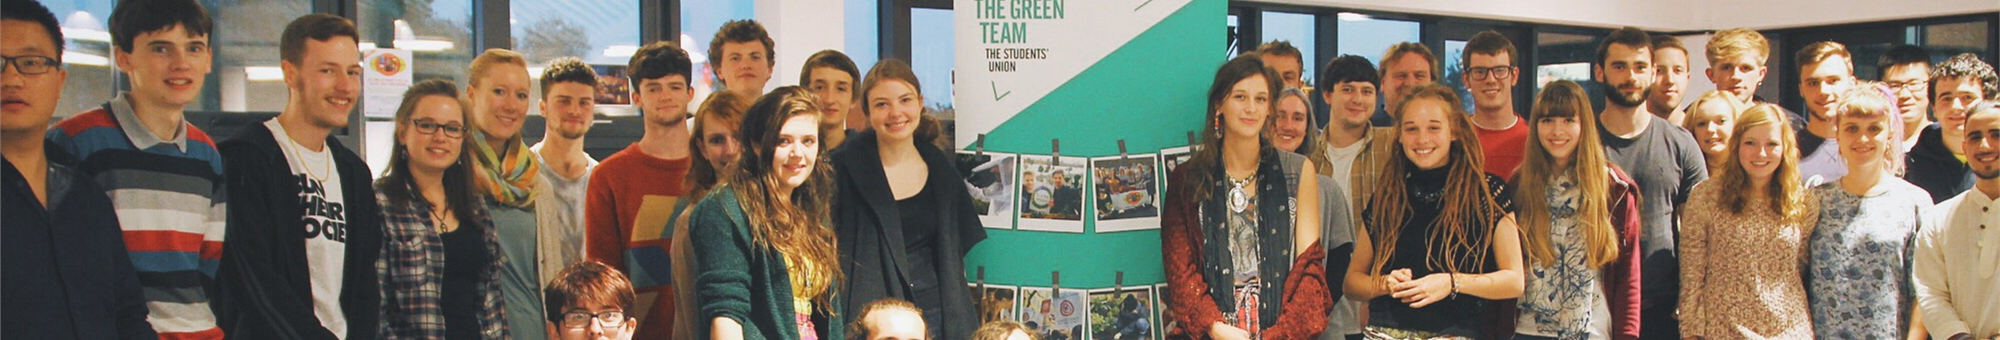 We have a shared interest in sustainability and are passionate about exploring ways to create positive change on campus and in the Bristol community.